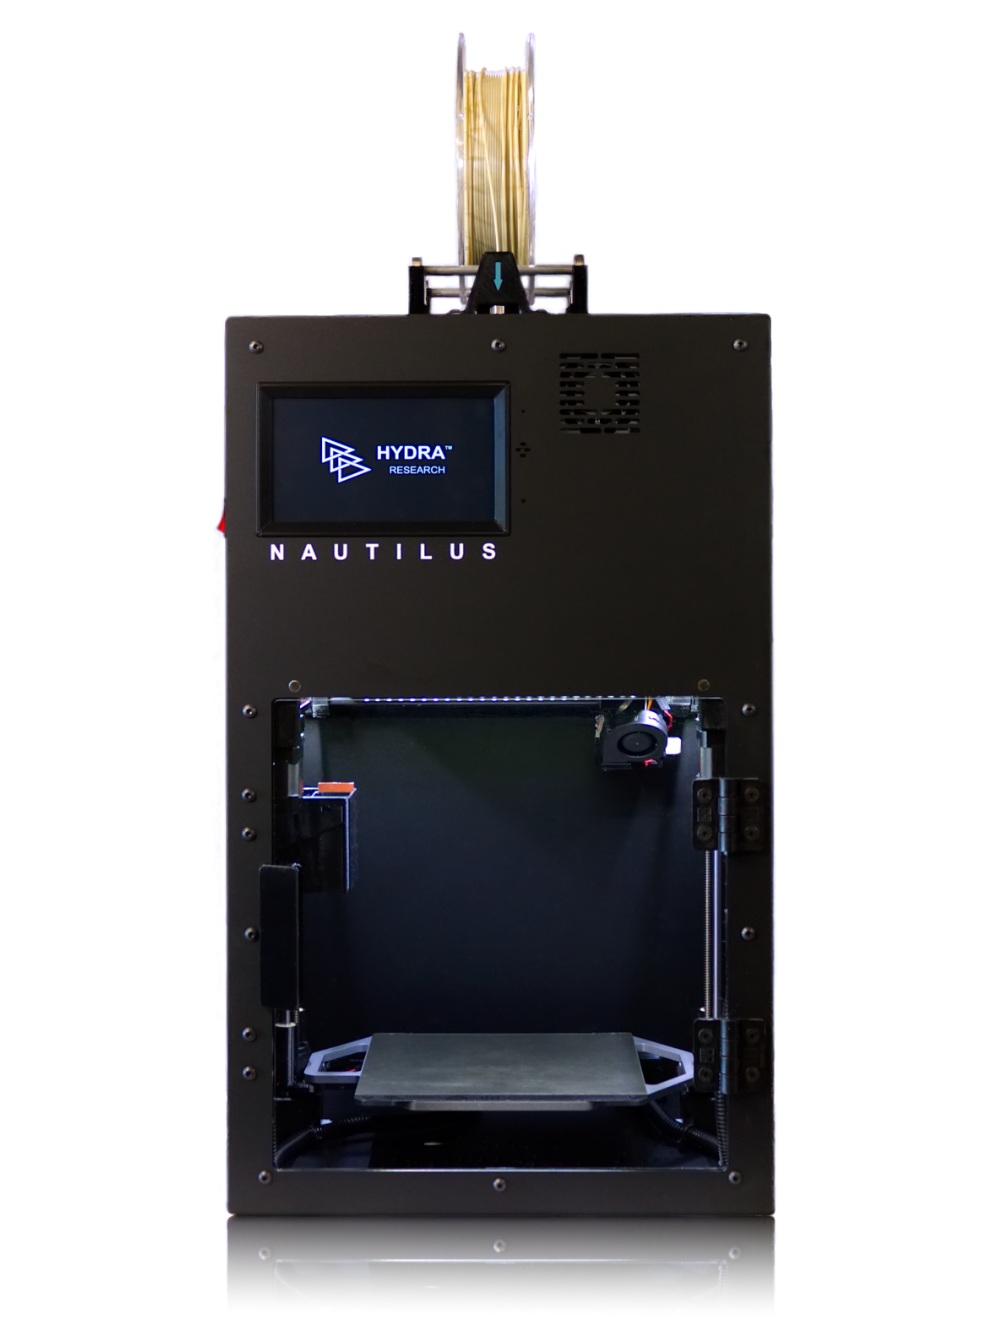 The Nautilus at $2,500 is right in the middle of the more professional $1,500-$3,500 price bracket